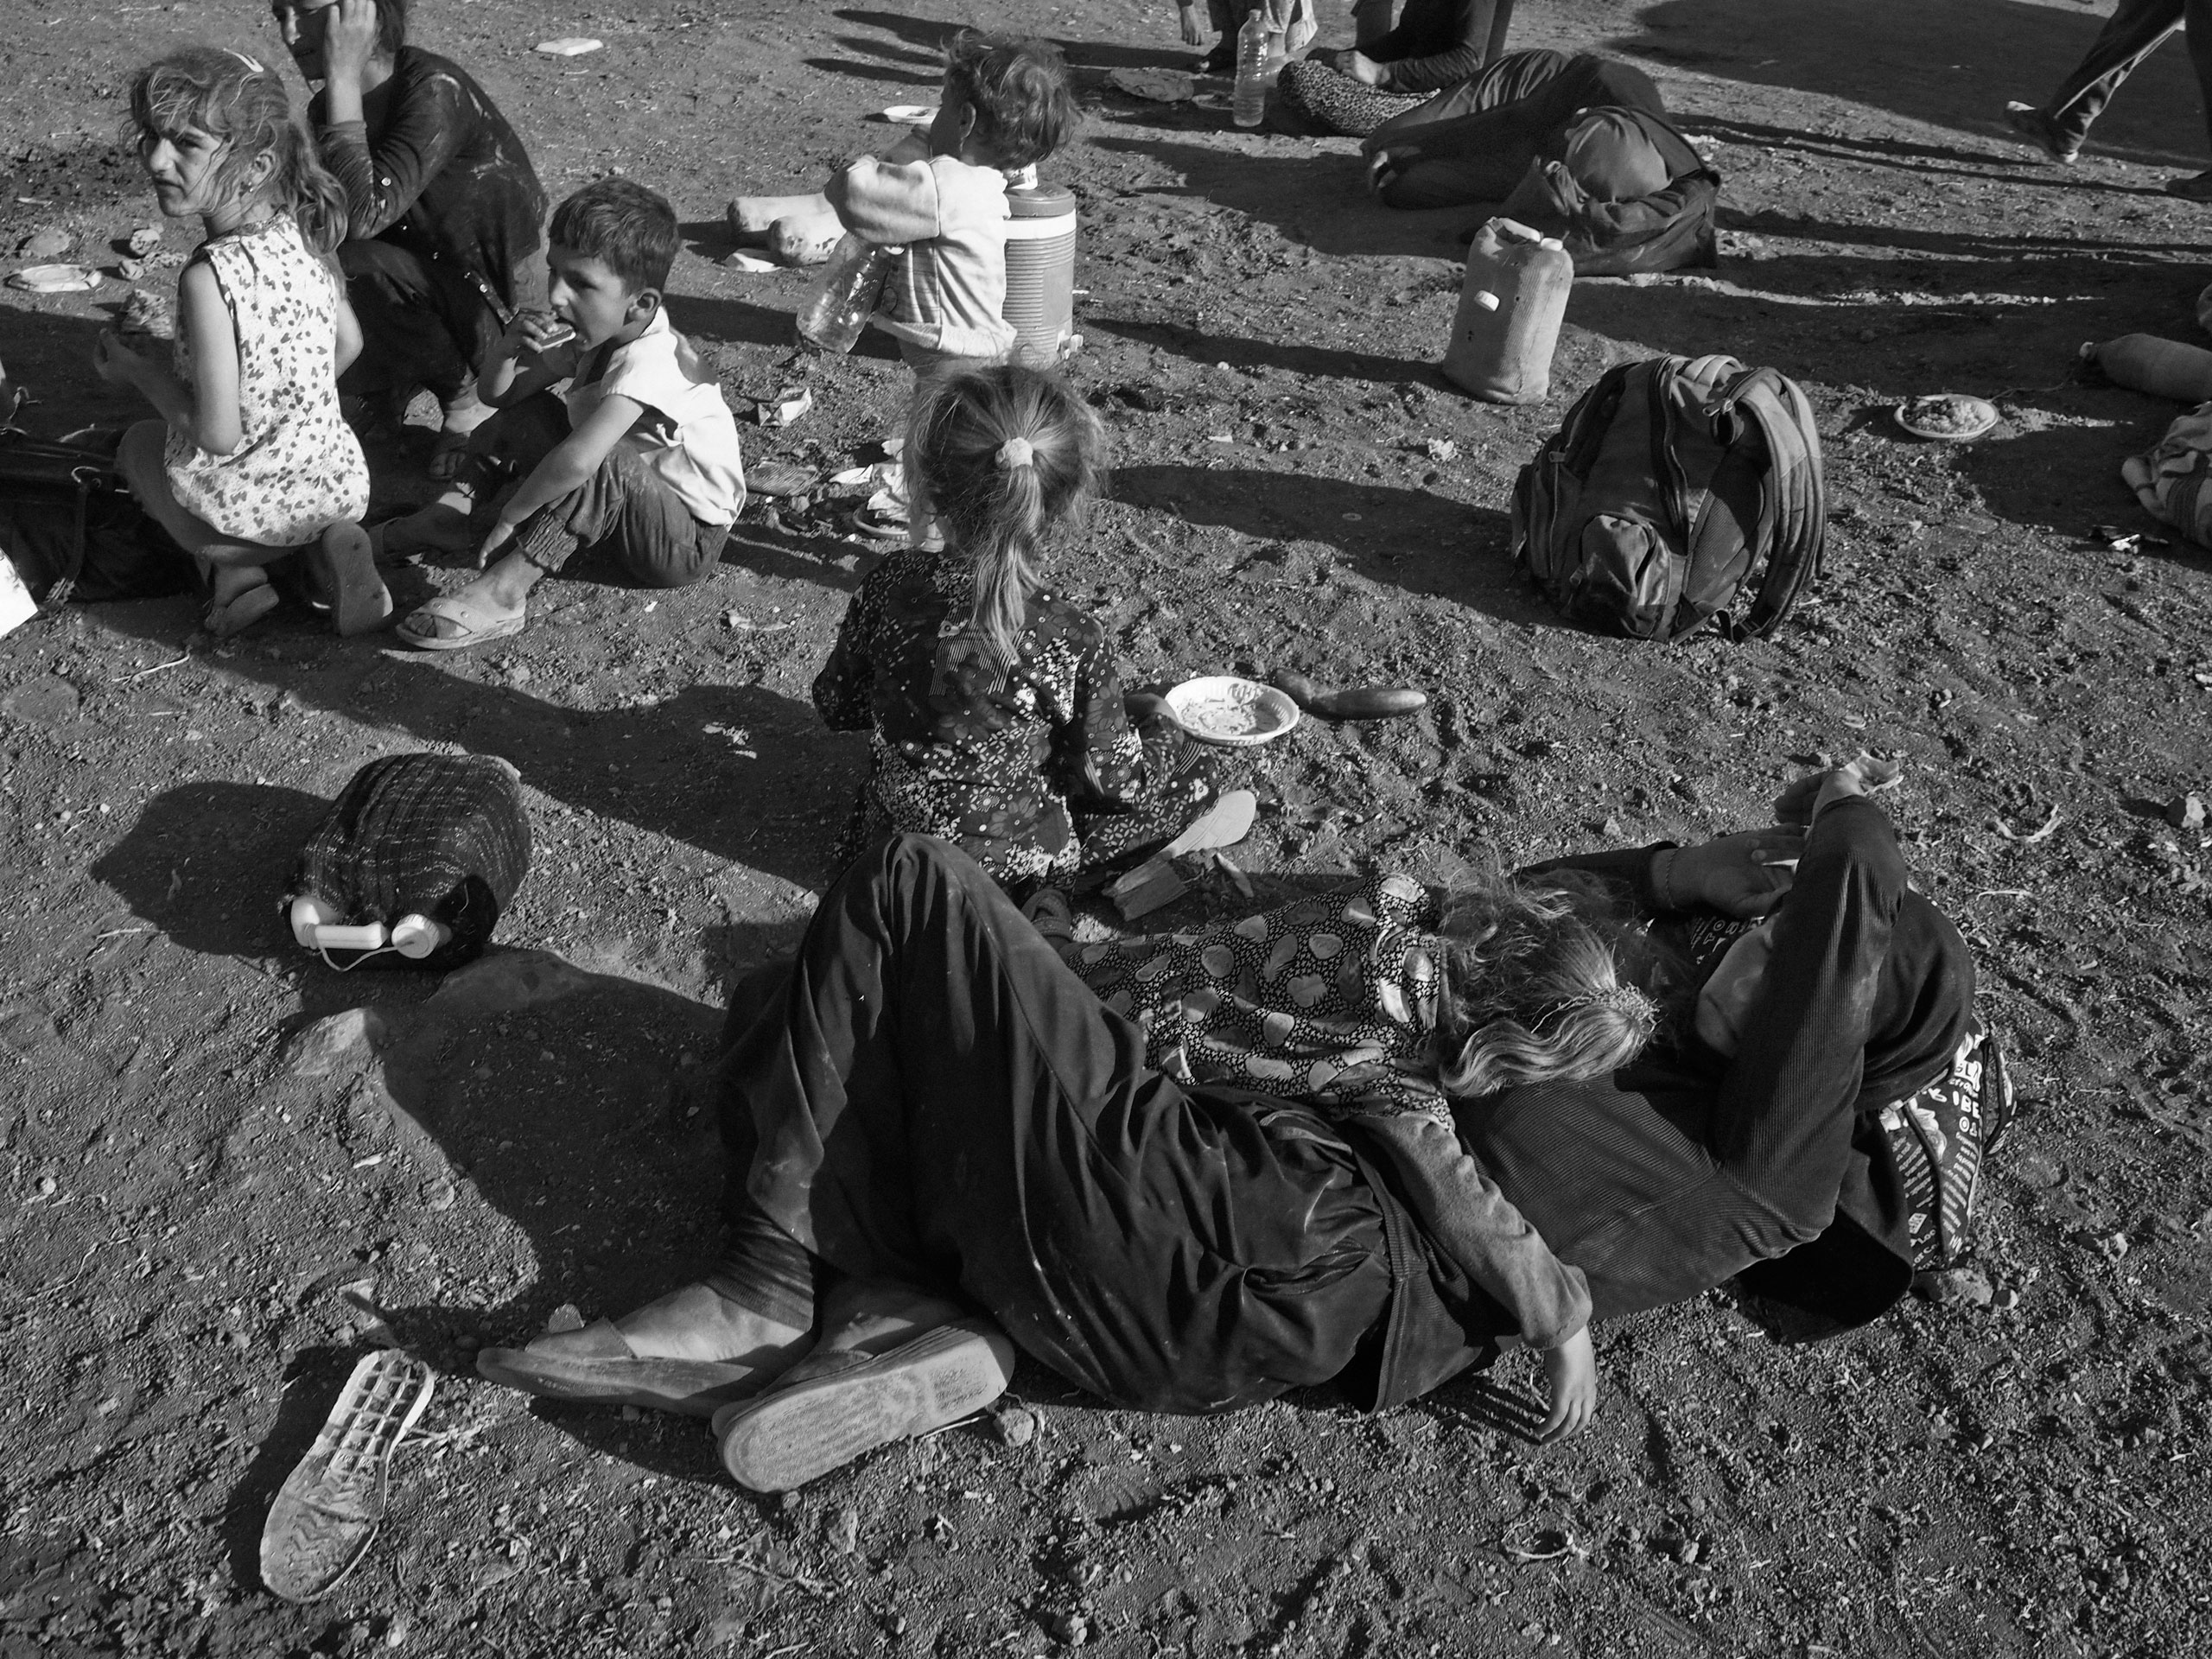 Yezidi women and children from Sinjar, Iraq, rest at a makeshift camp on the outskirts of Derek, a Kurdish-controlled town in Syria, shortly after arriving on foot from the Sinjar Mountains where they sought refuge. Aug. 10, 2014.